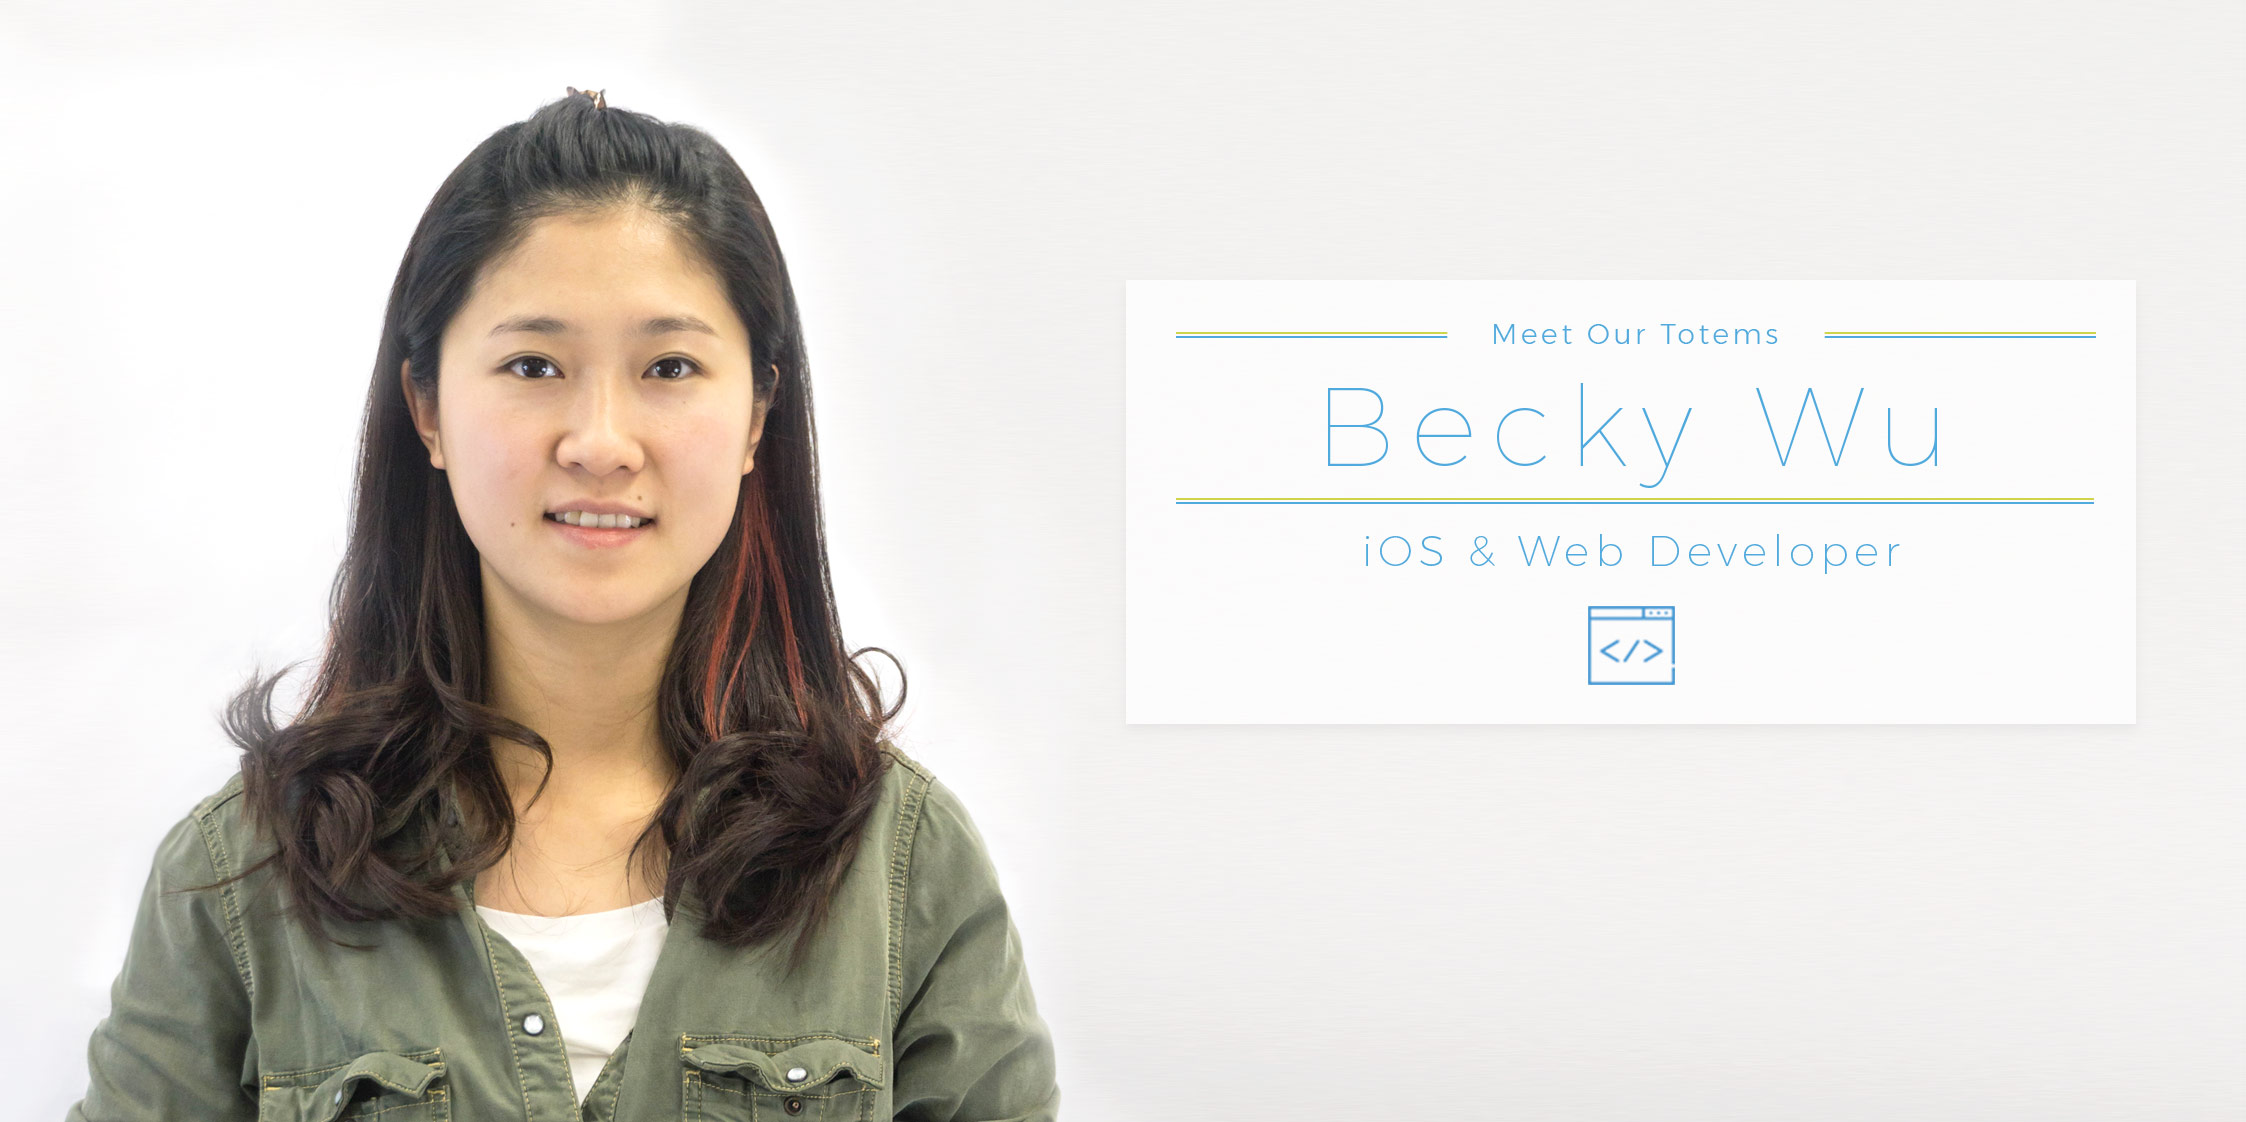 Meet our totems iOS & Web Developer Becky Wu